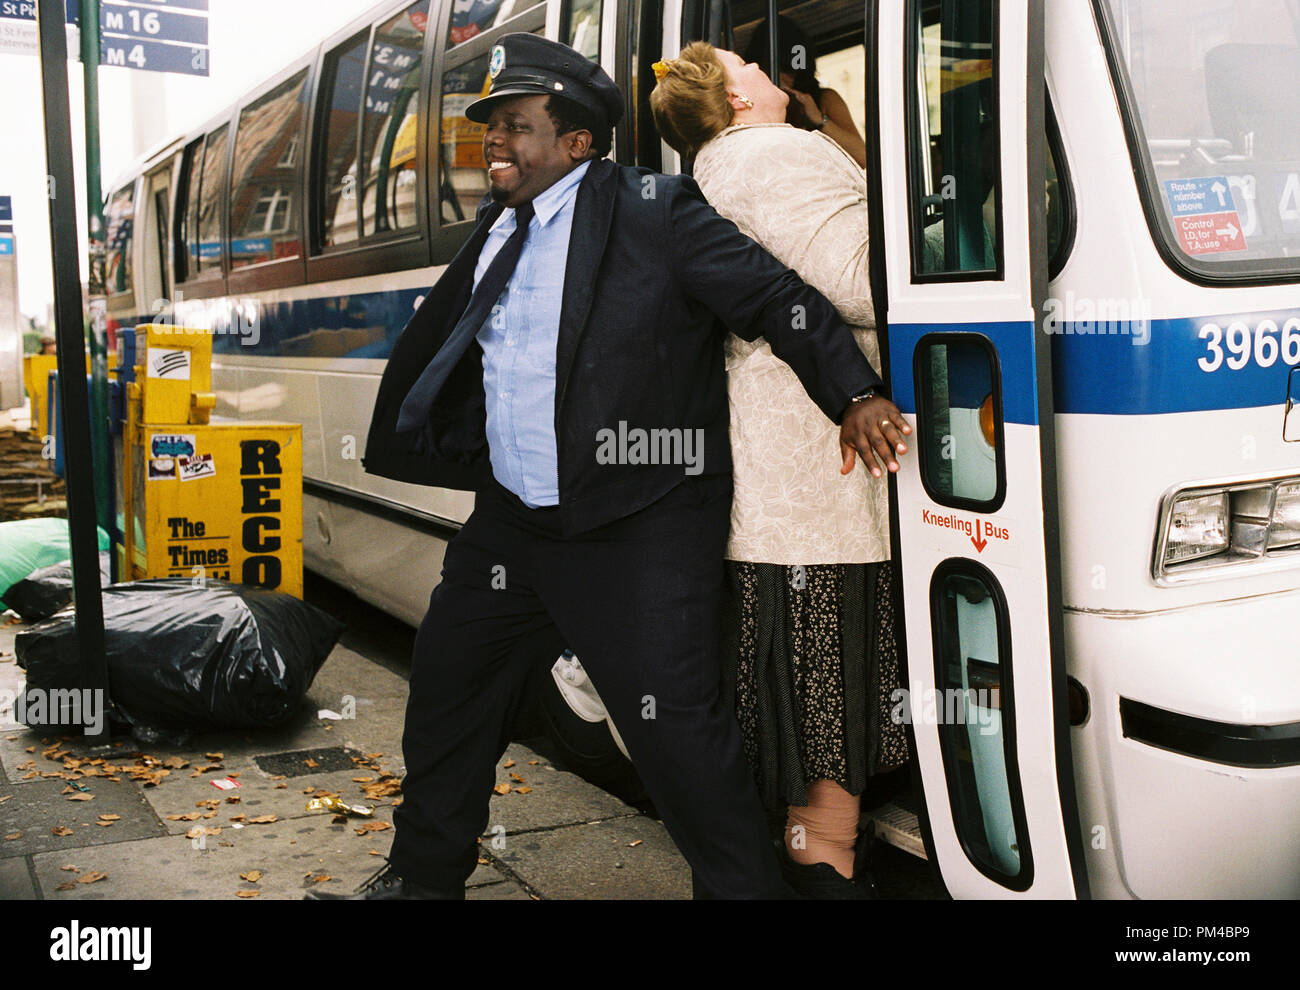 Film Still from 'The Honeymooners' Cedric the Entertainer 2005 - Stock Image